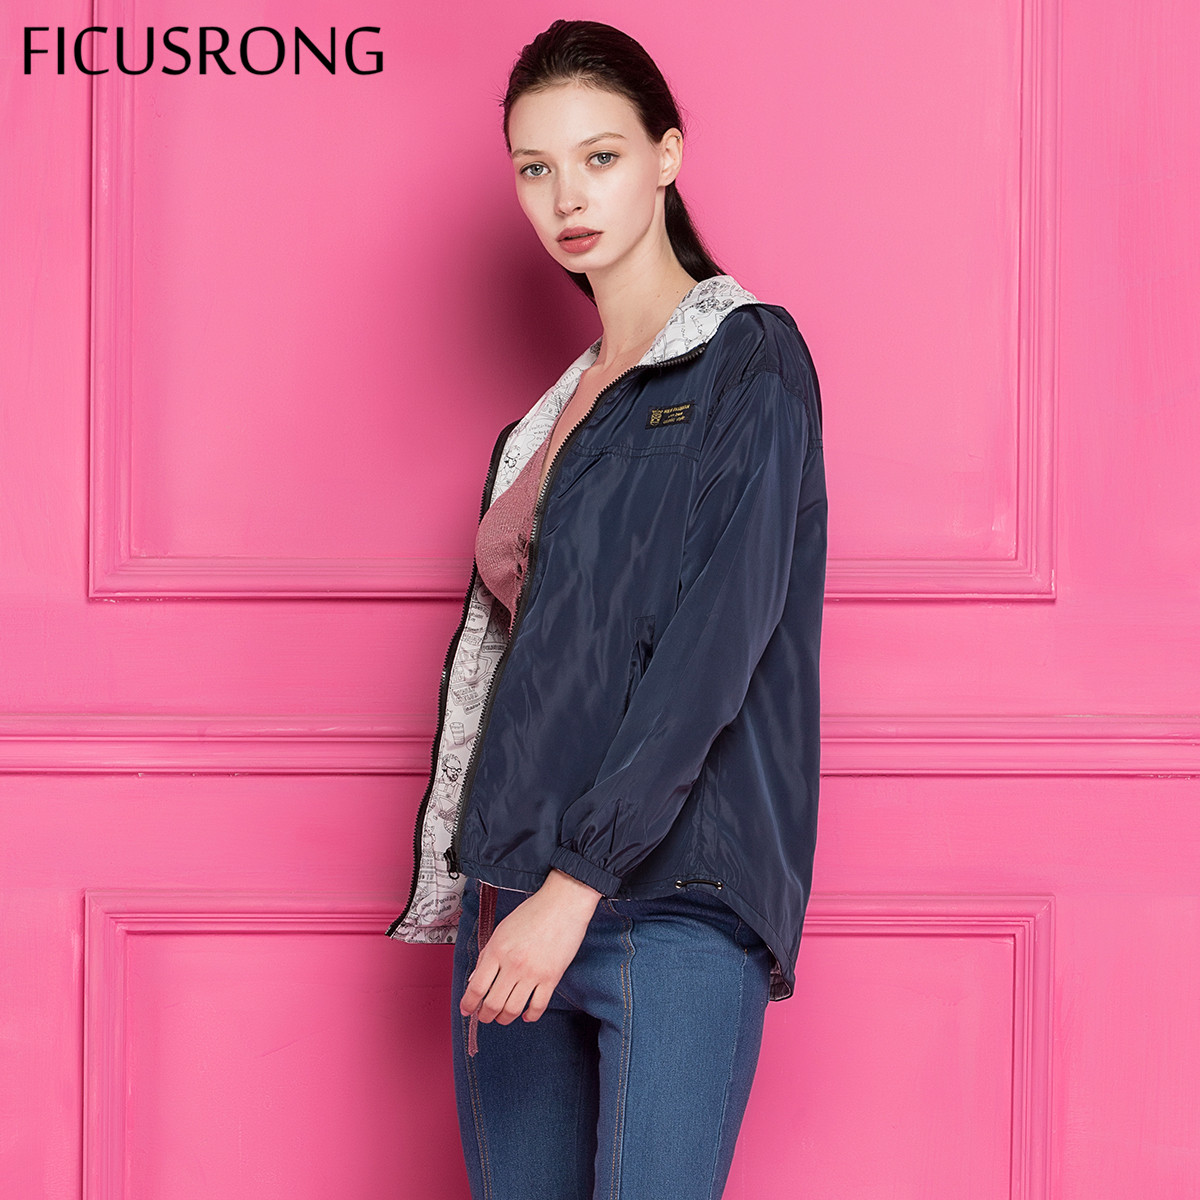 2019 New Autumn Women Bomber   Basic     Jacket   Pocket Zipper Hooded Two Side Wear Cartoon Print Outwear Navy Loose Coat FICUSRONG